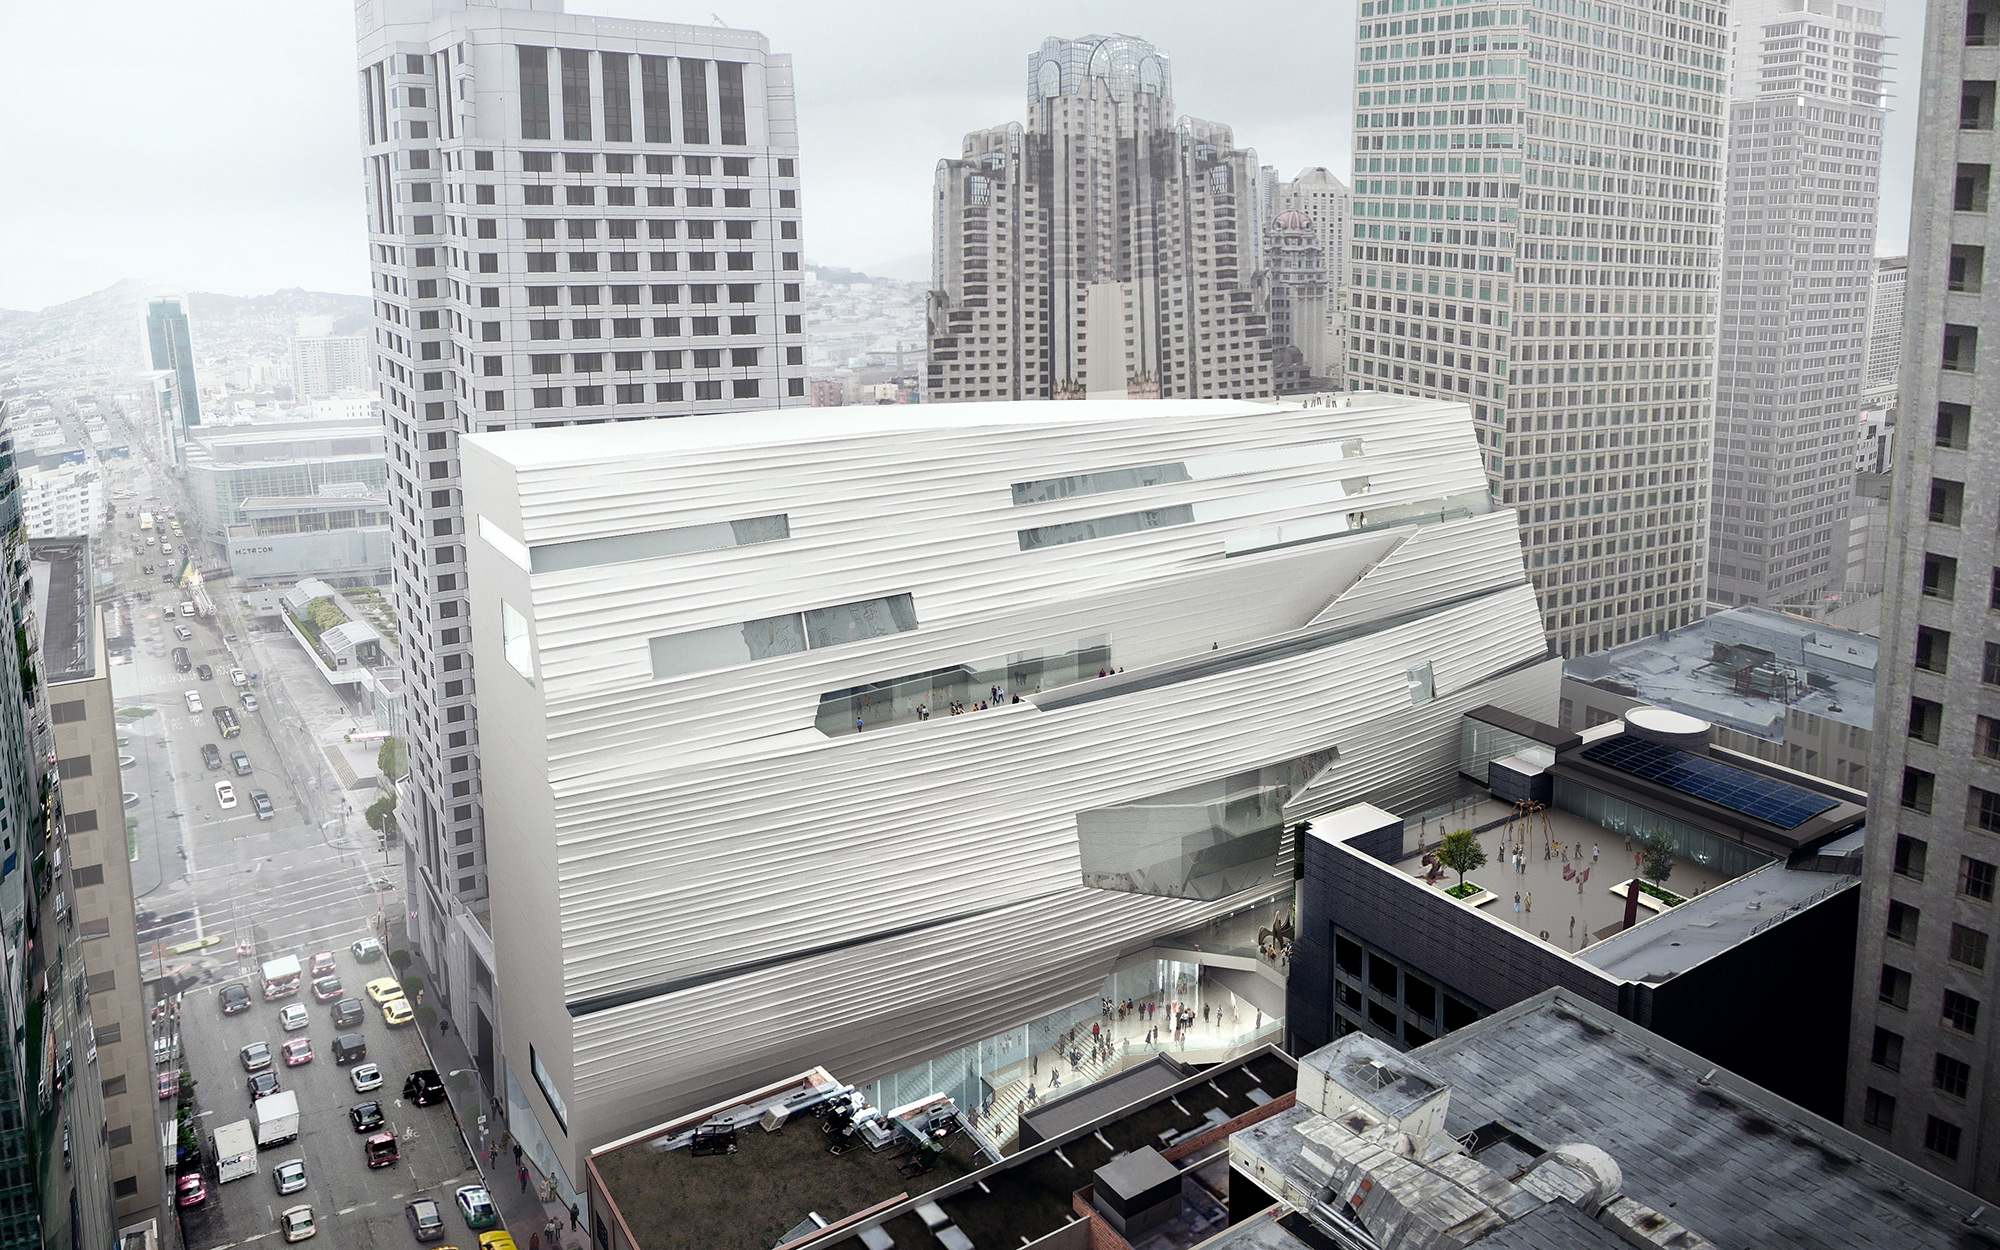 SFMOMA, in San Francisco